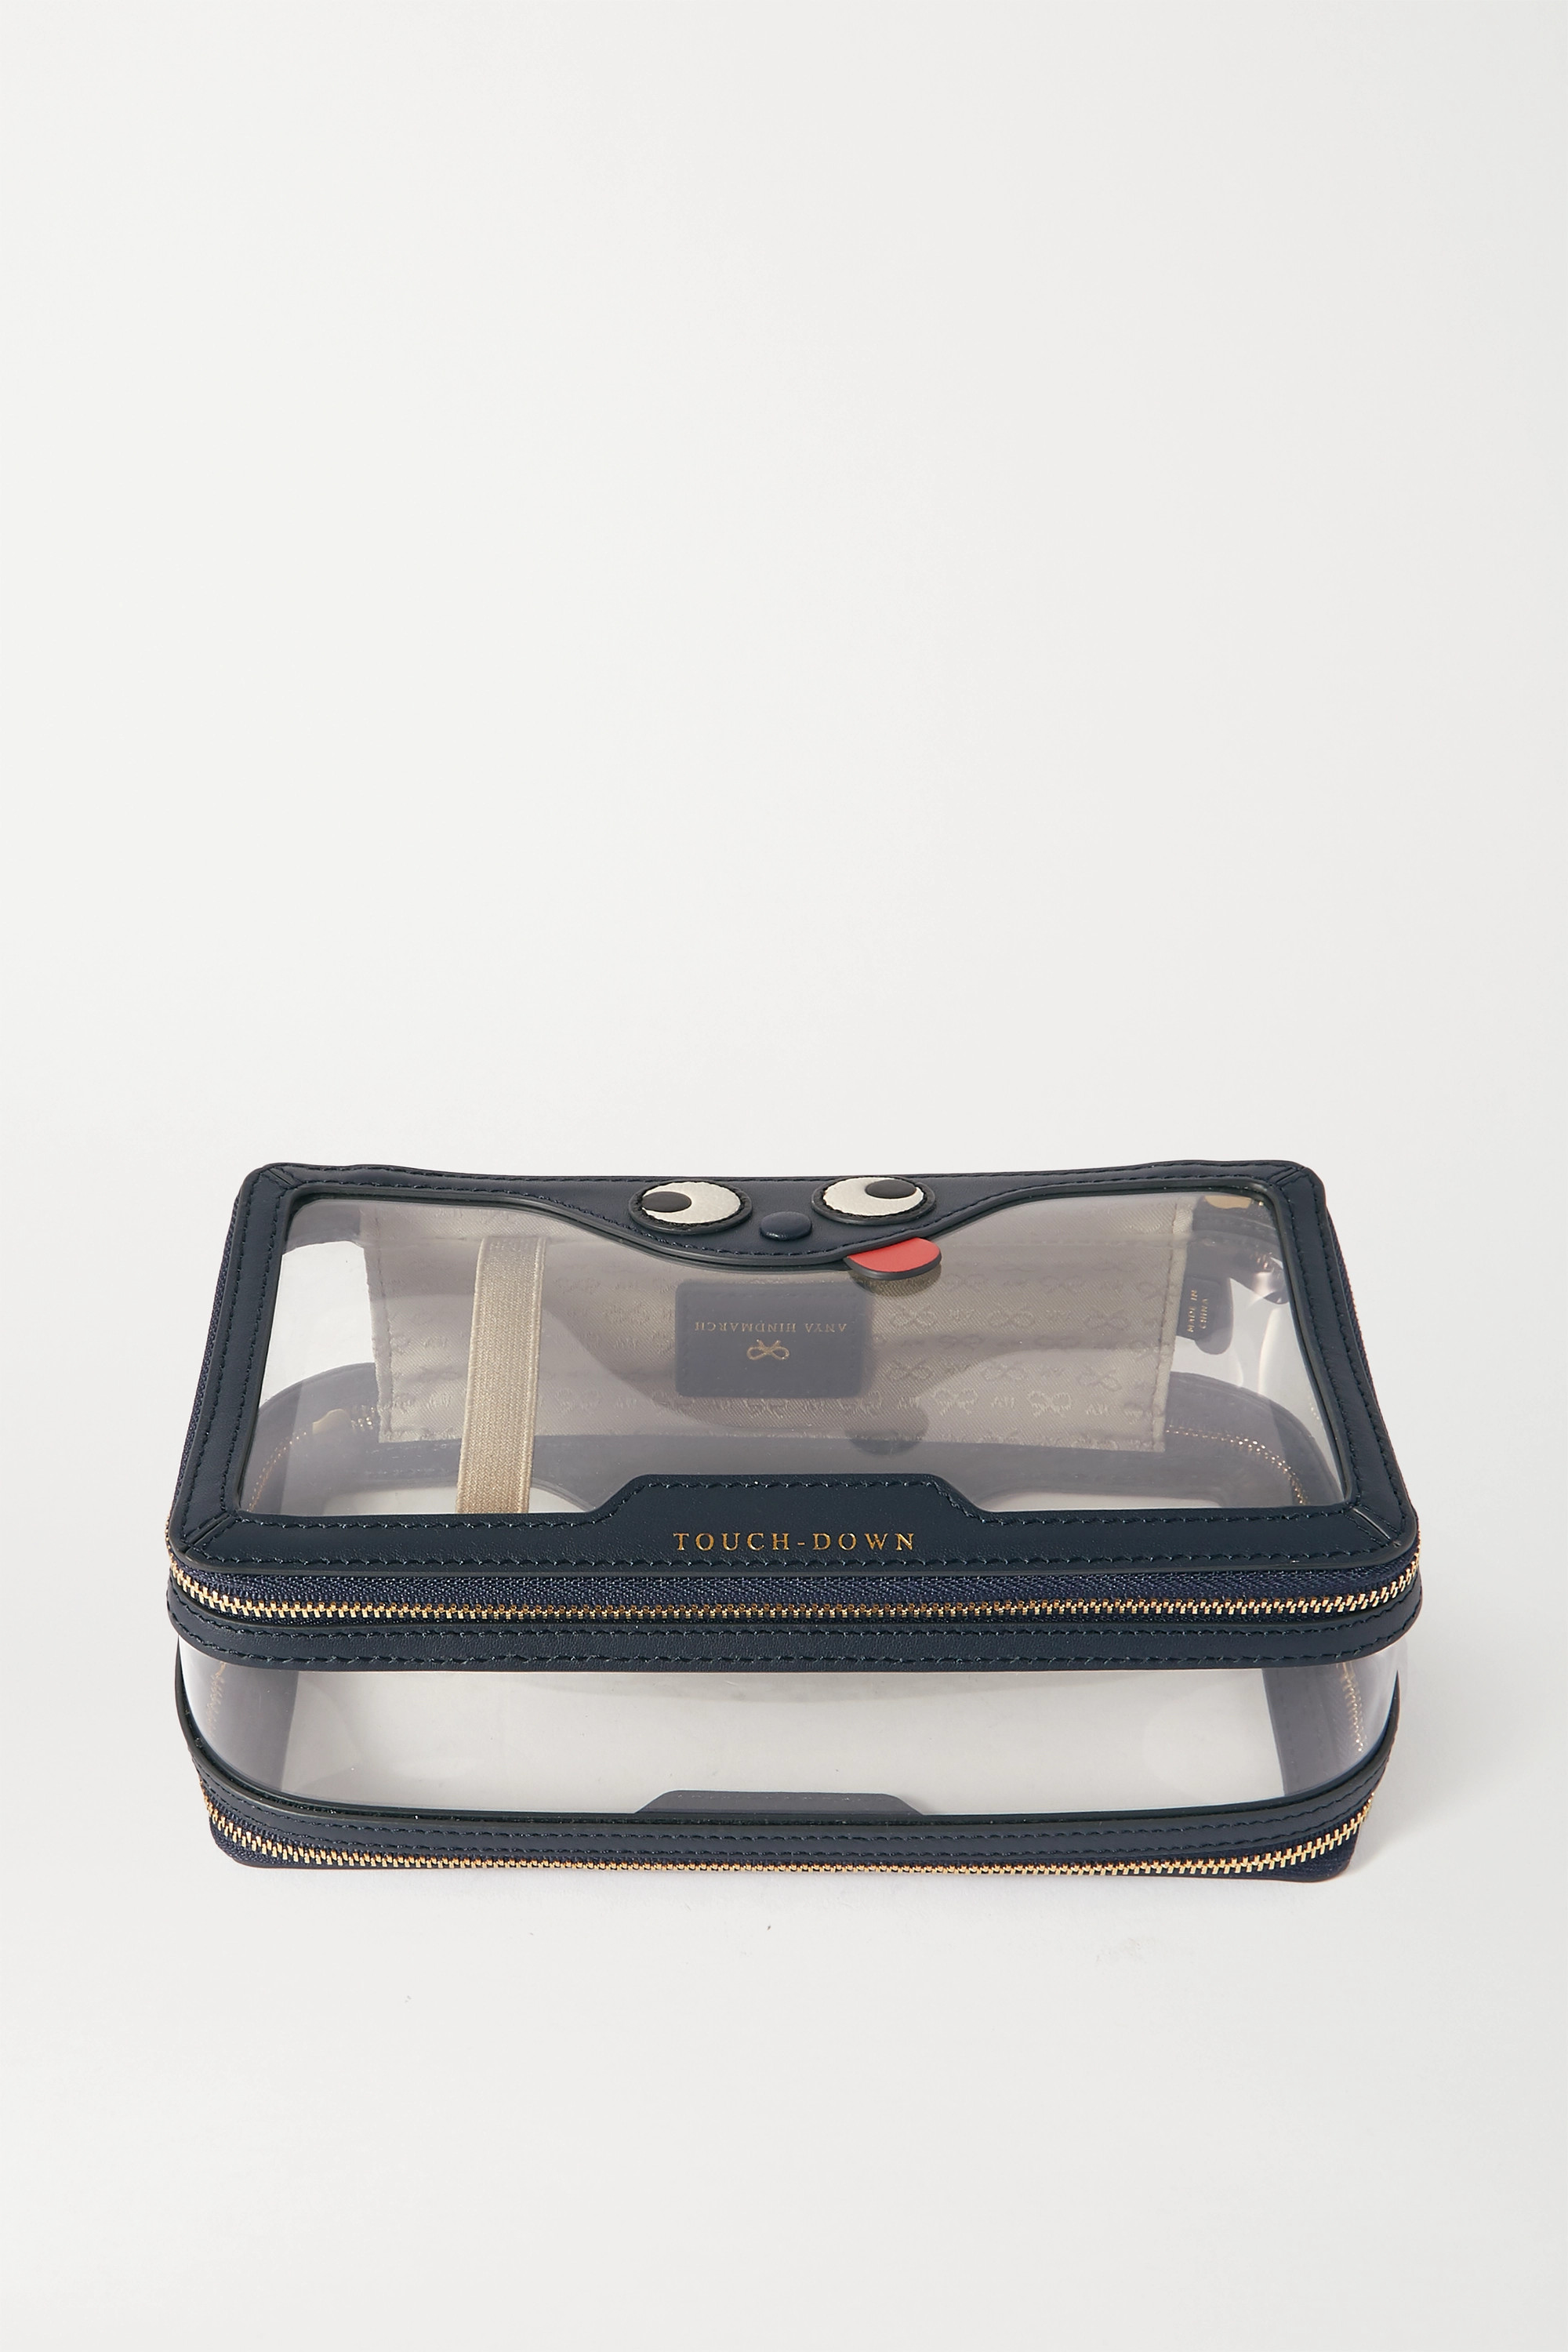 Anya Hindmarch In-Flight Zany leather-trimmed PVC cosmetics case